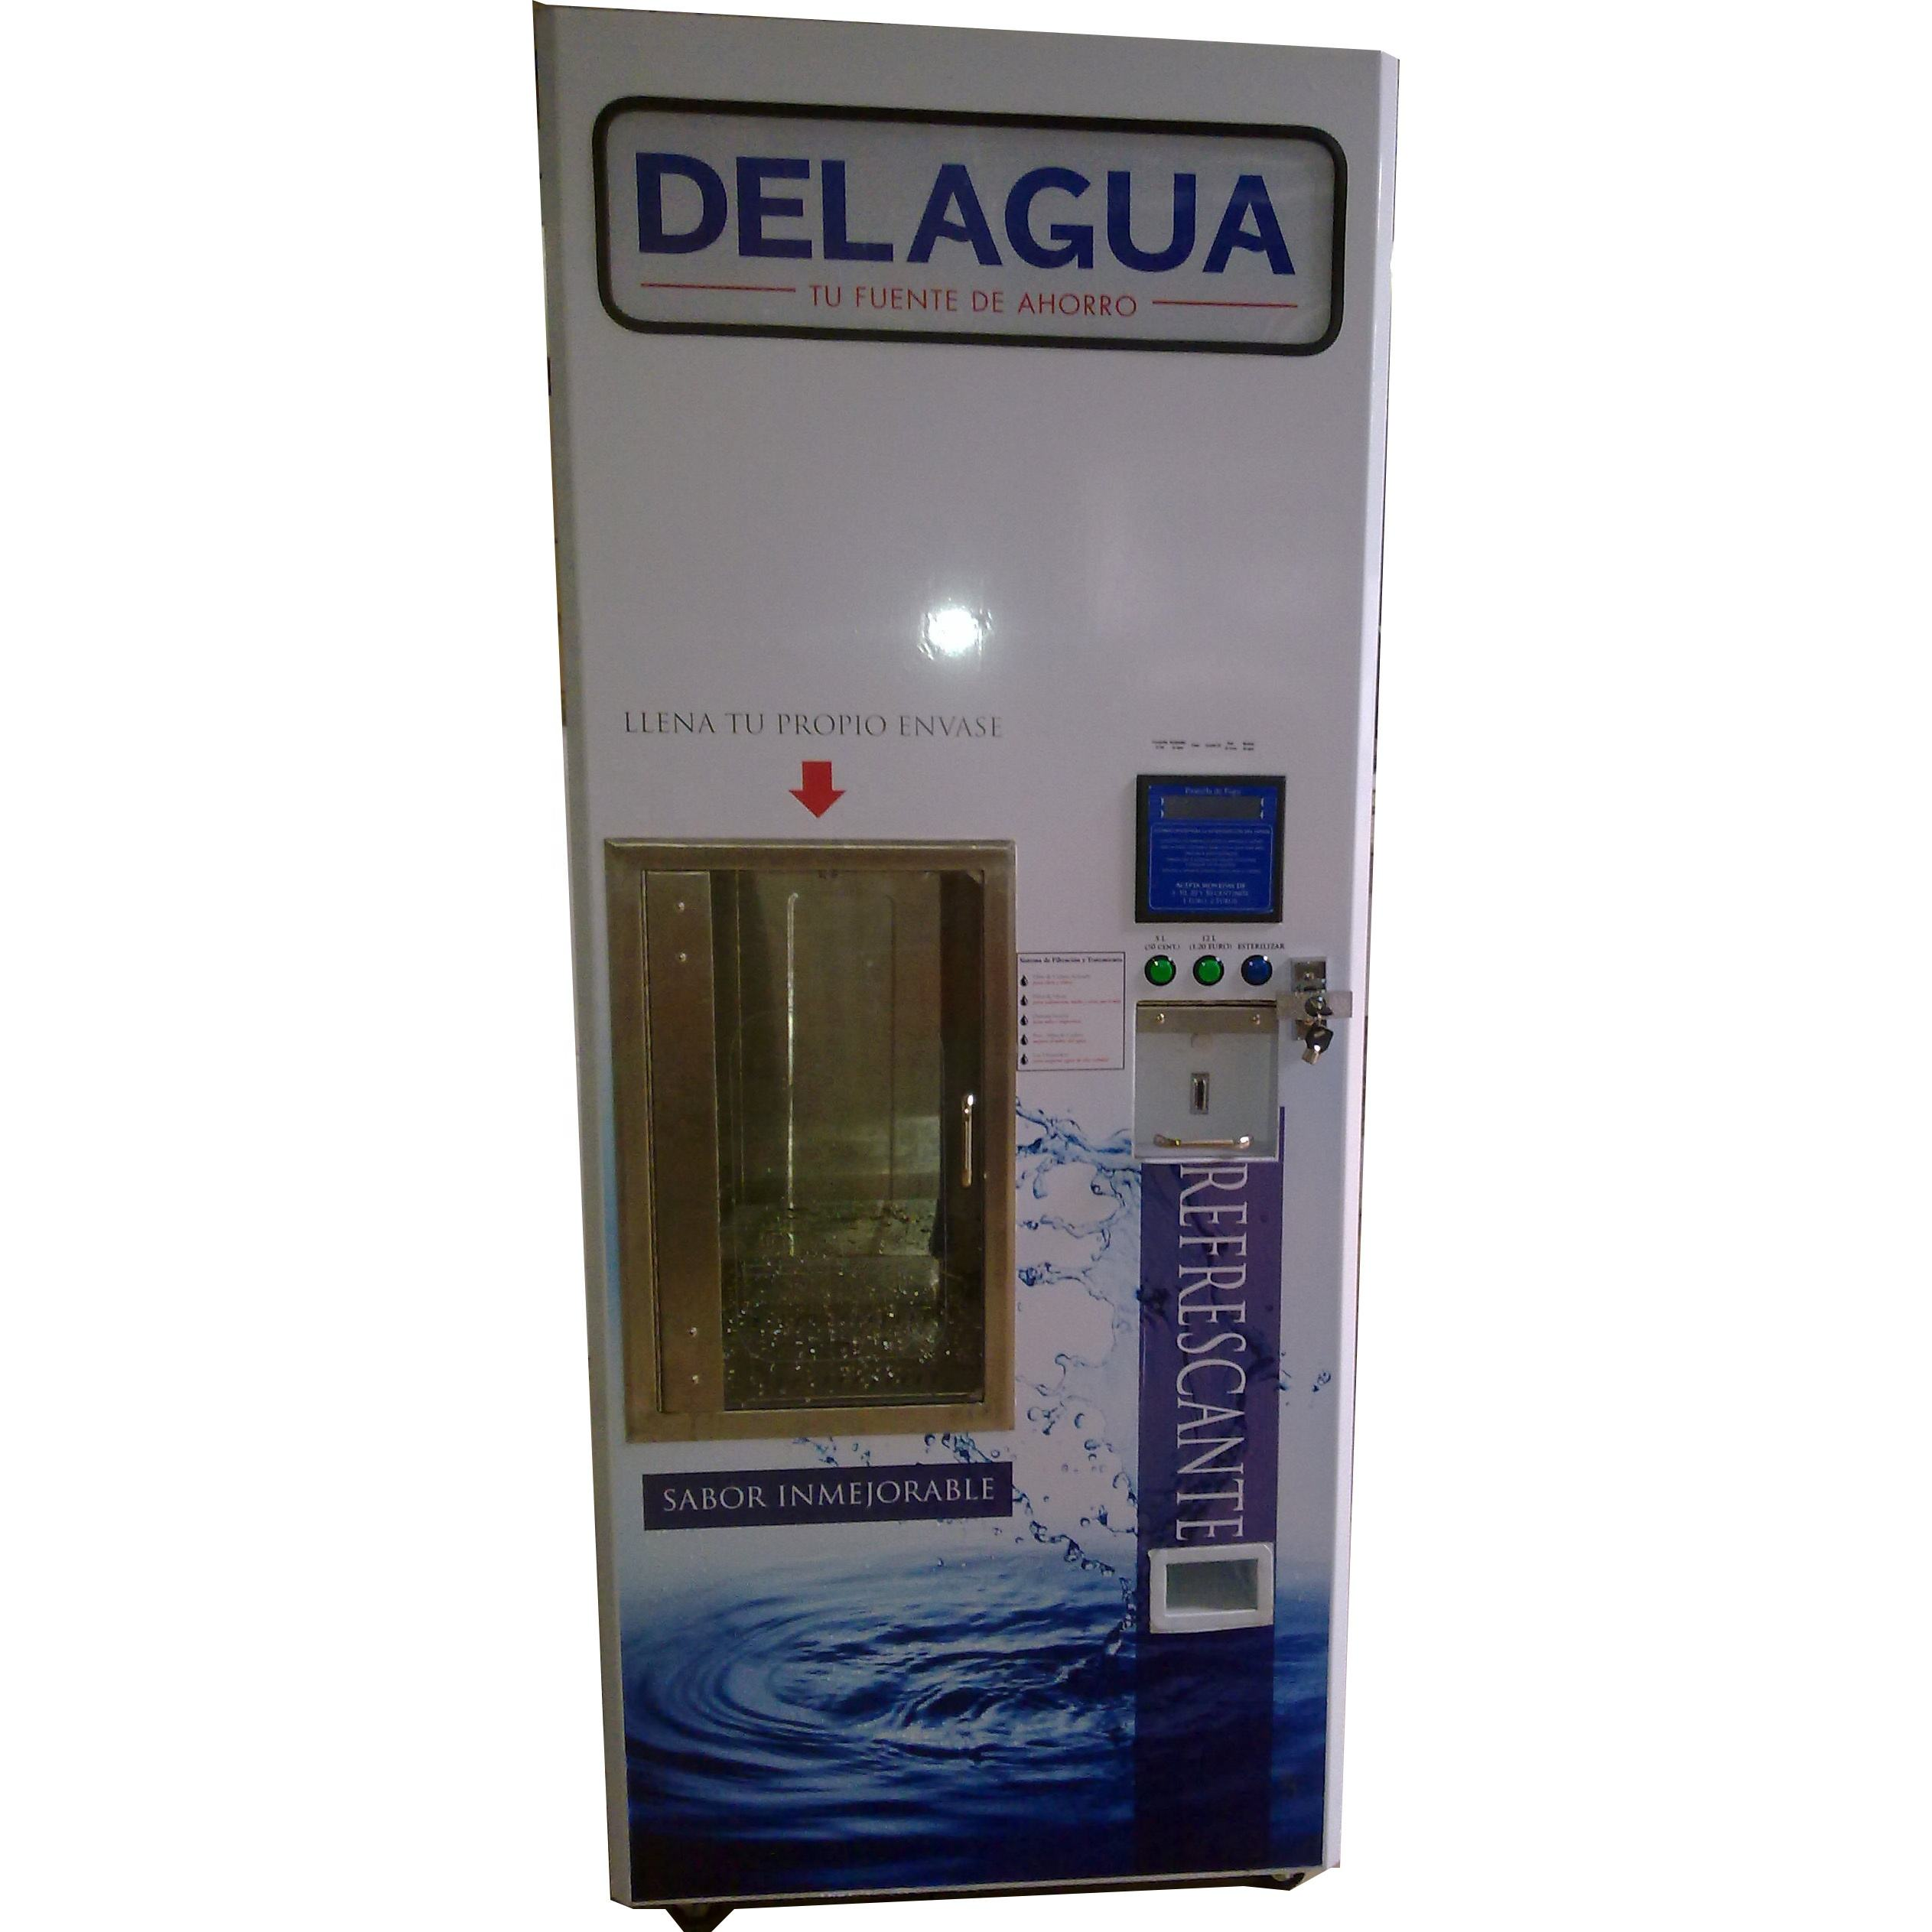 Automatic RO water vending machine with washing bottle function